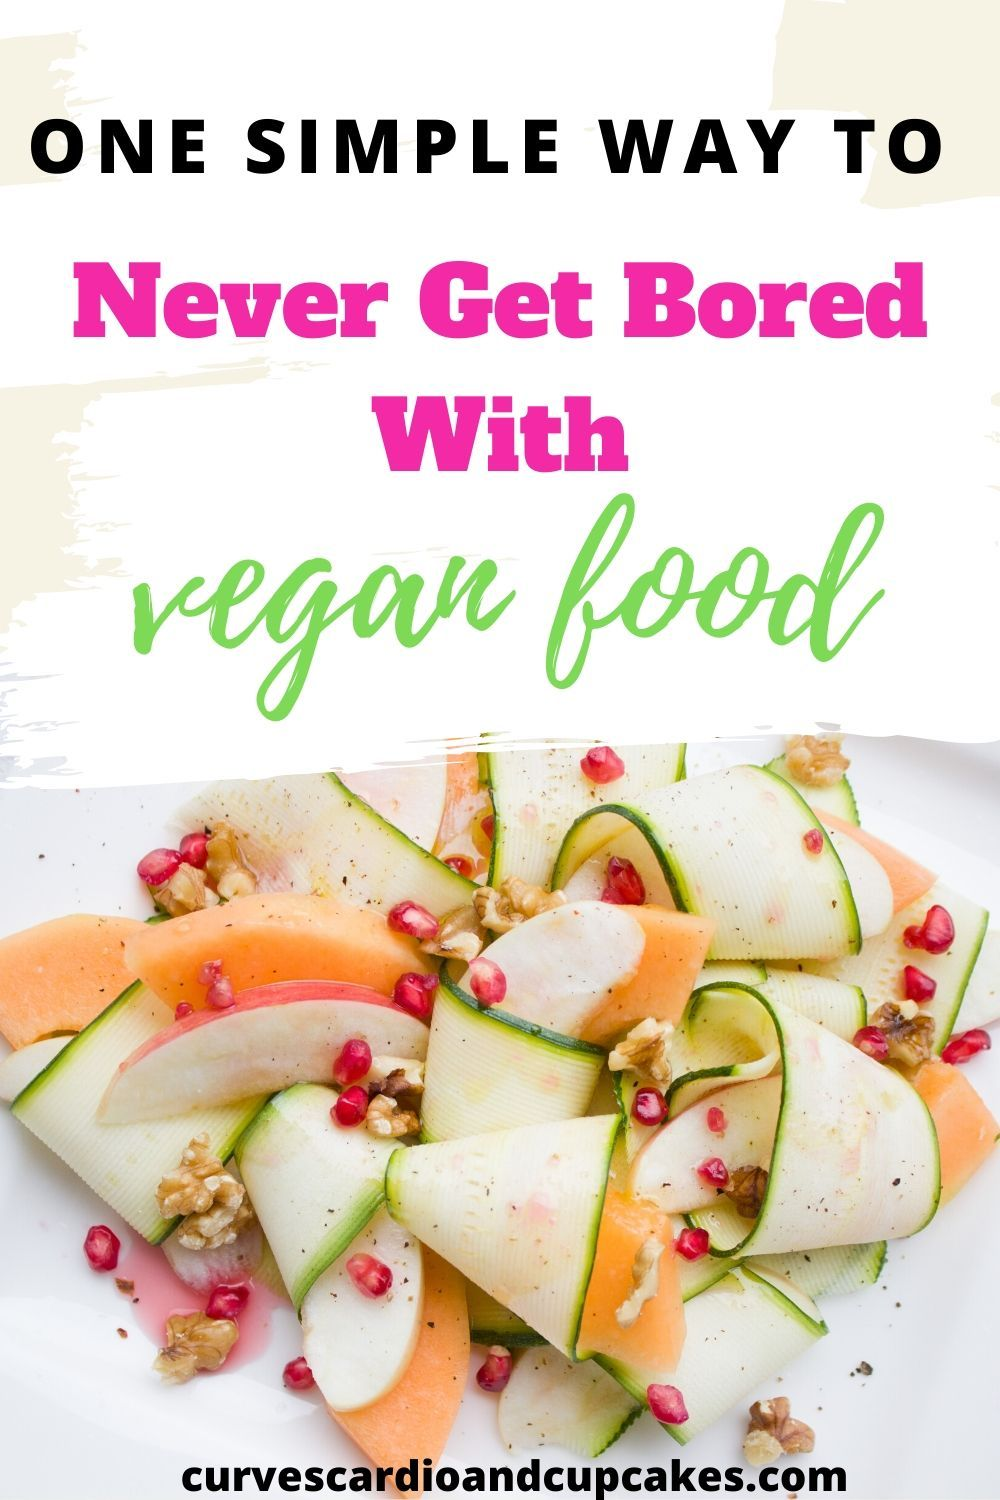 Bored With Vegan Diet Food? (Try This One Thing To Love